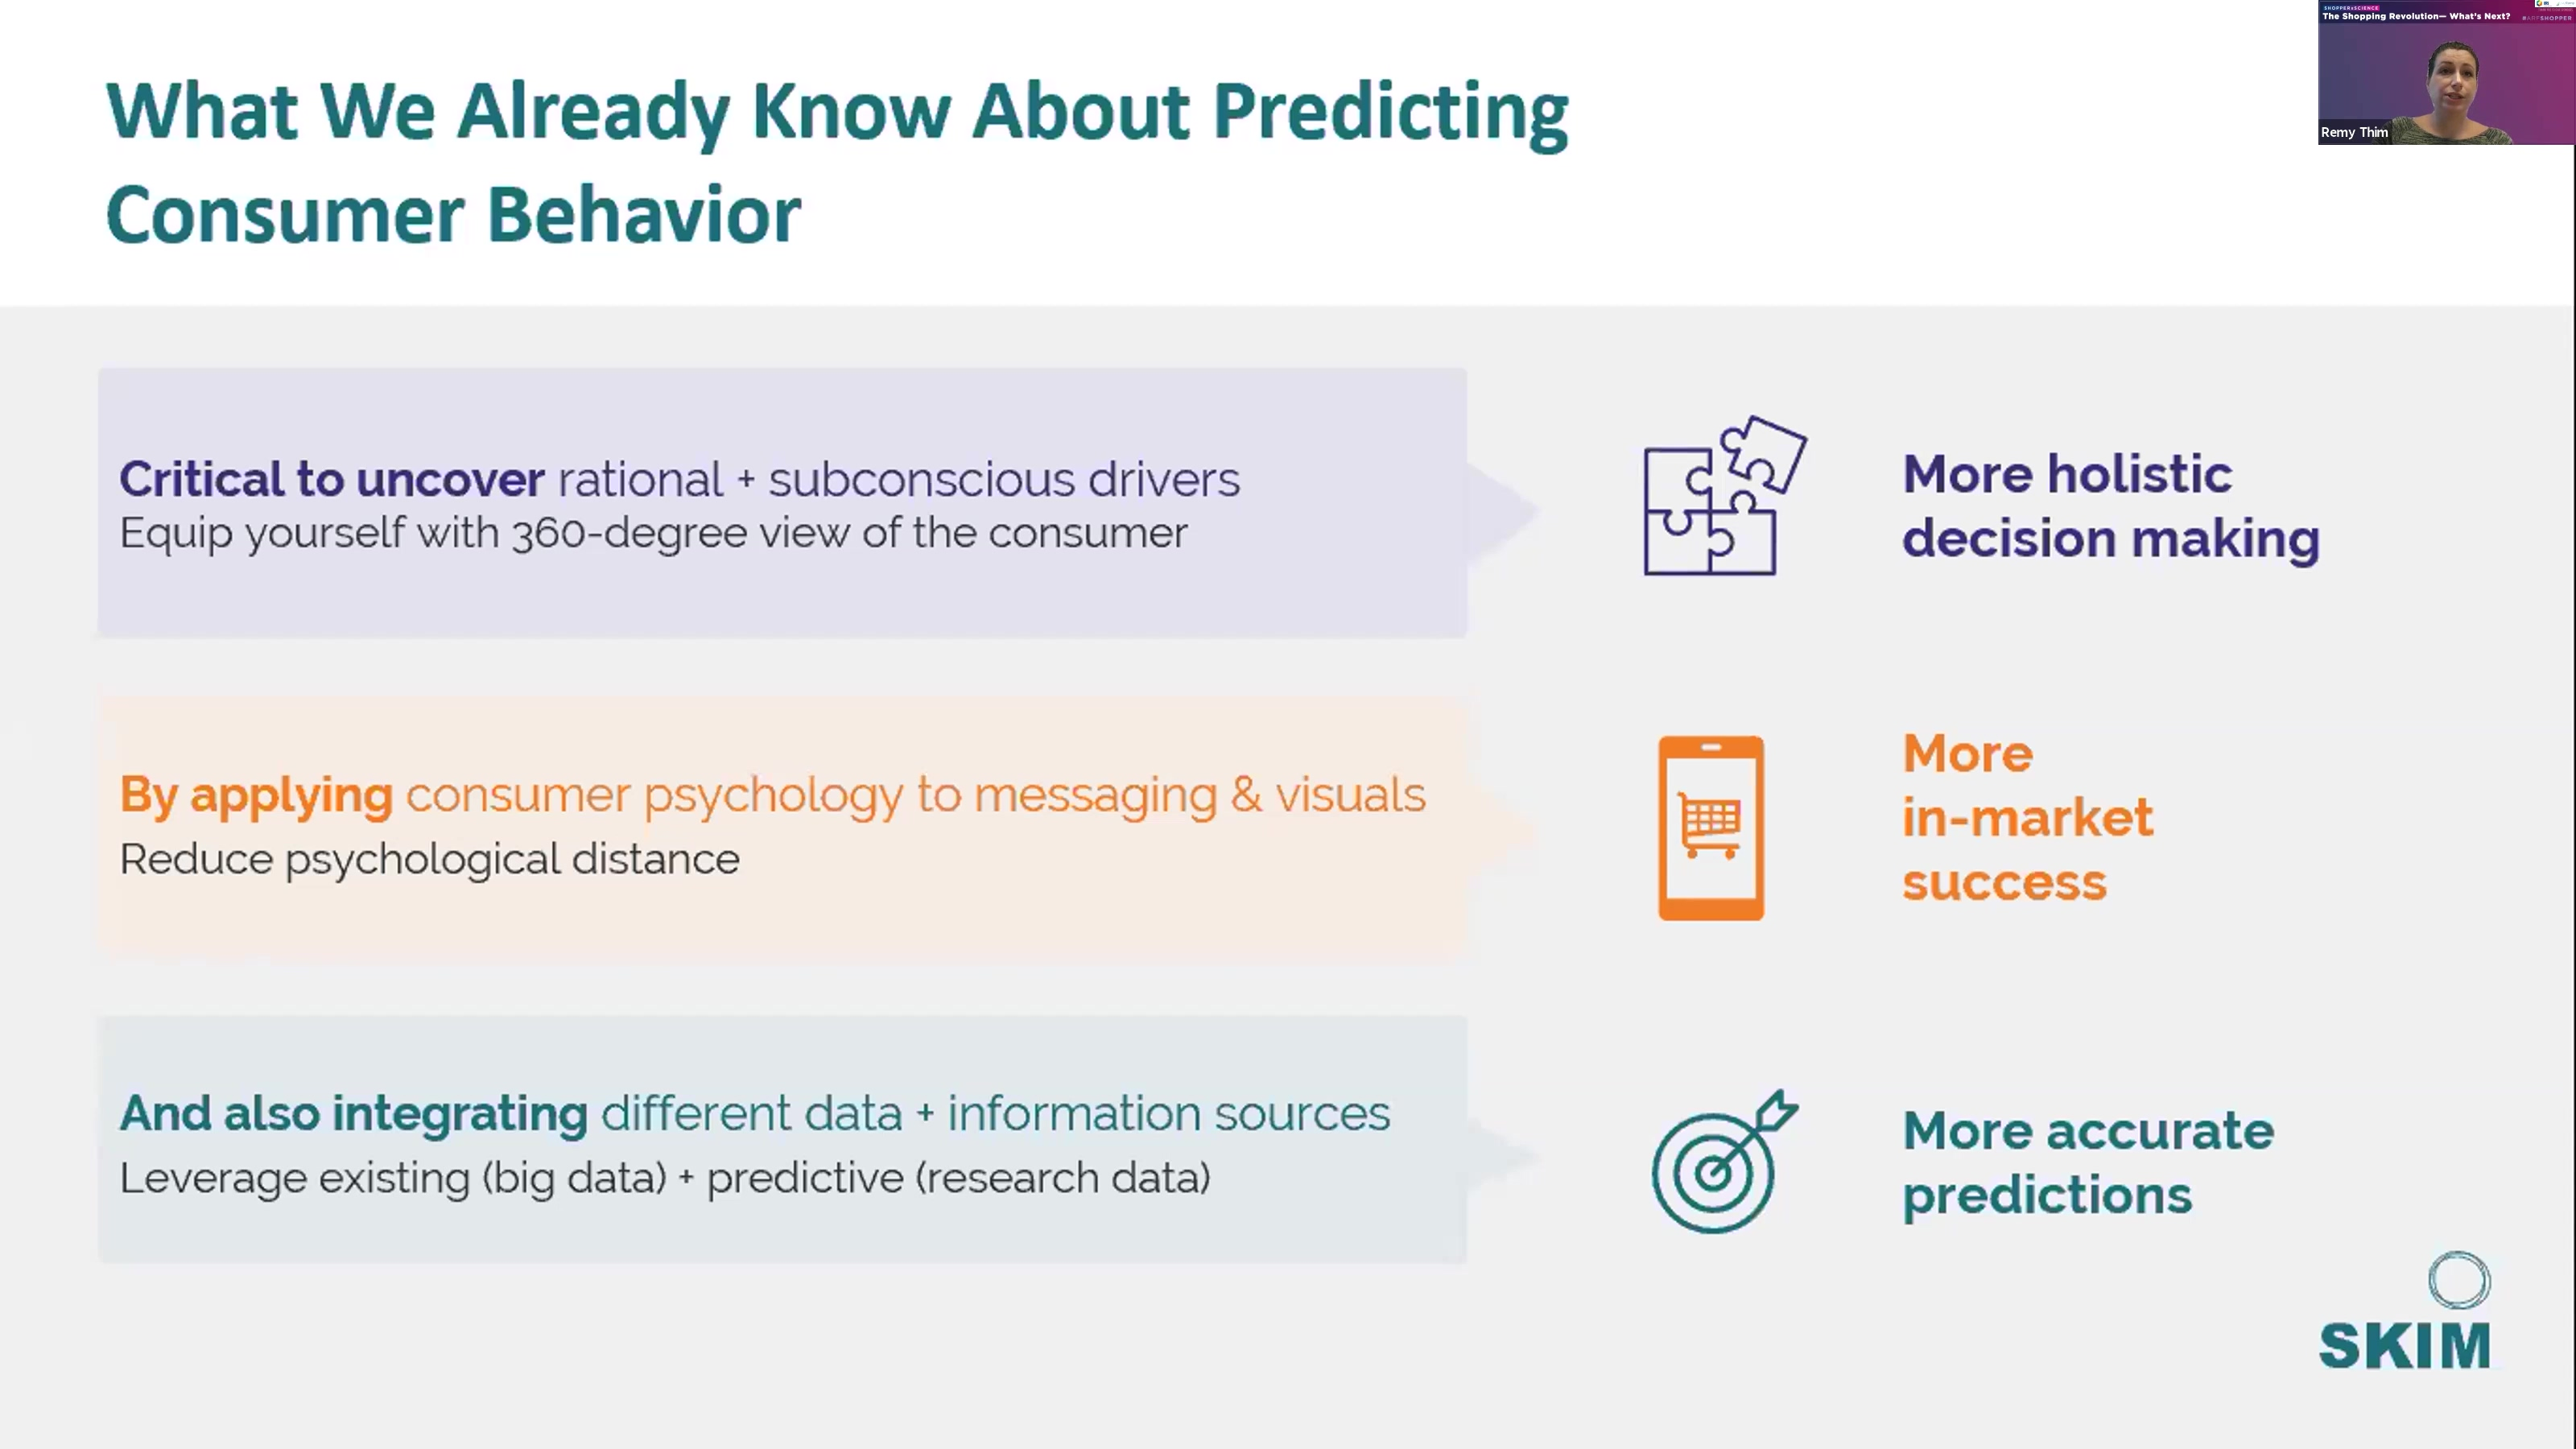 Influence the online shopper journey by applying psychographic insight